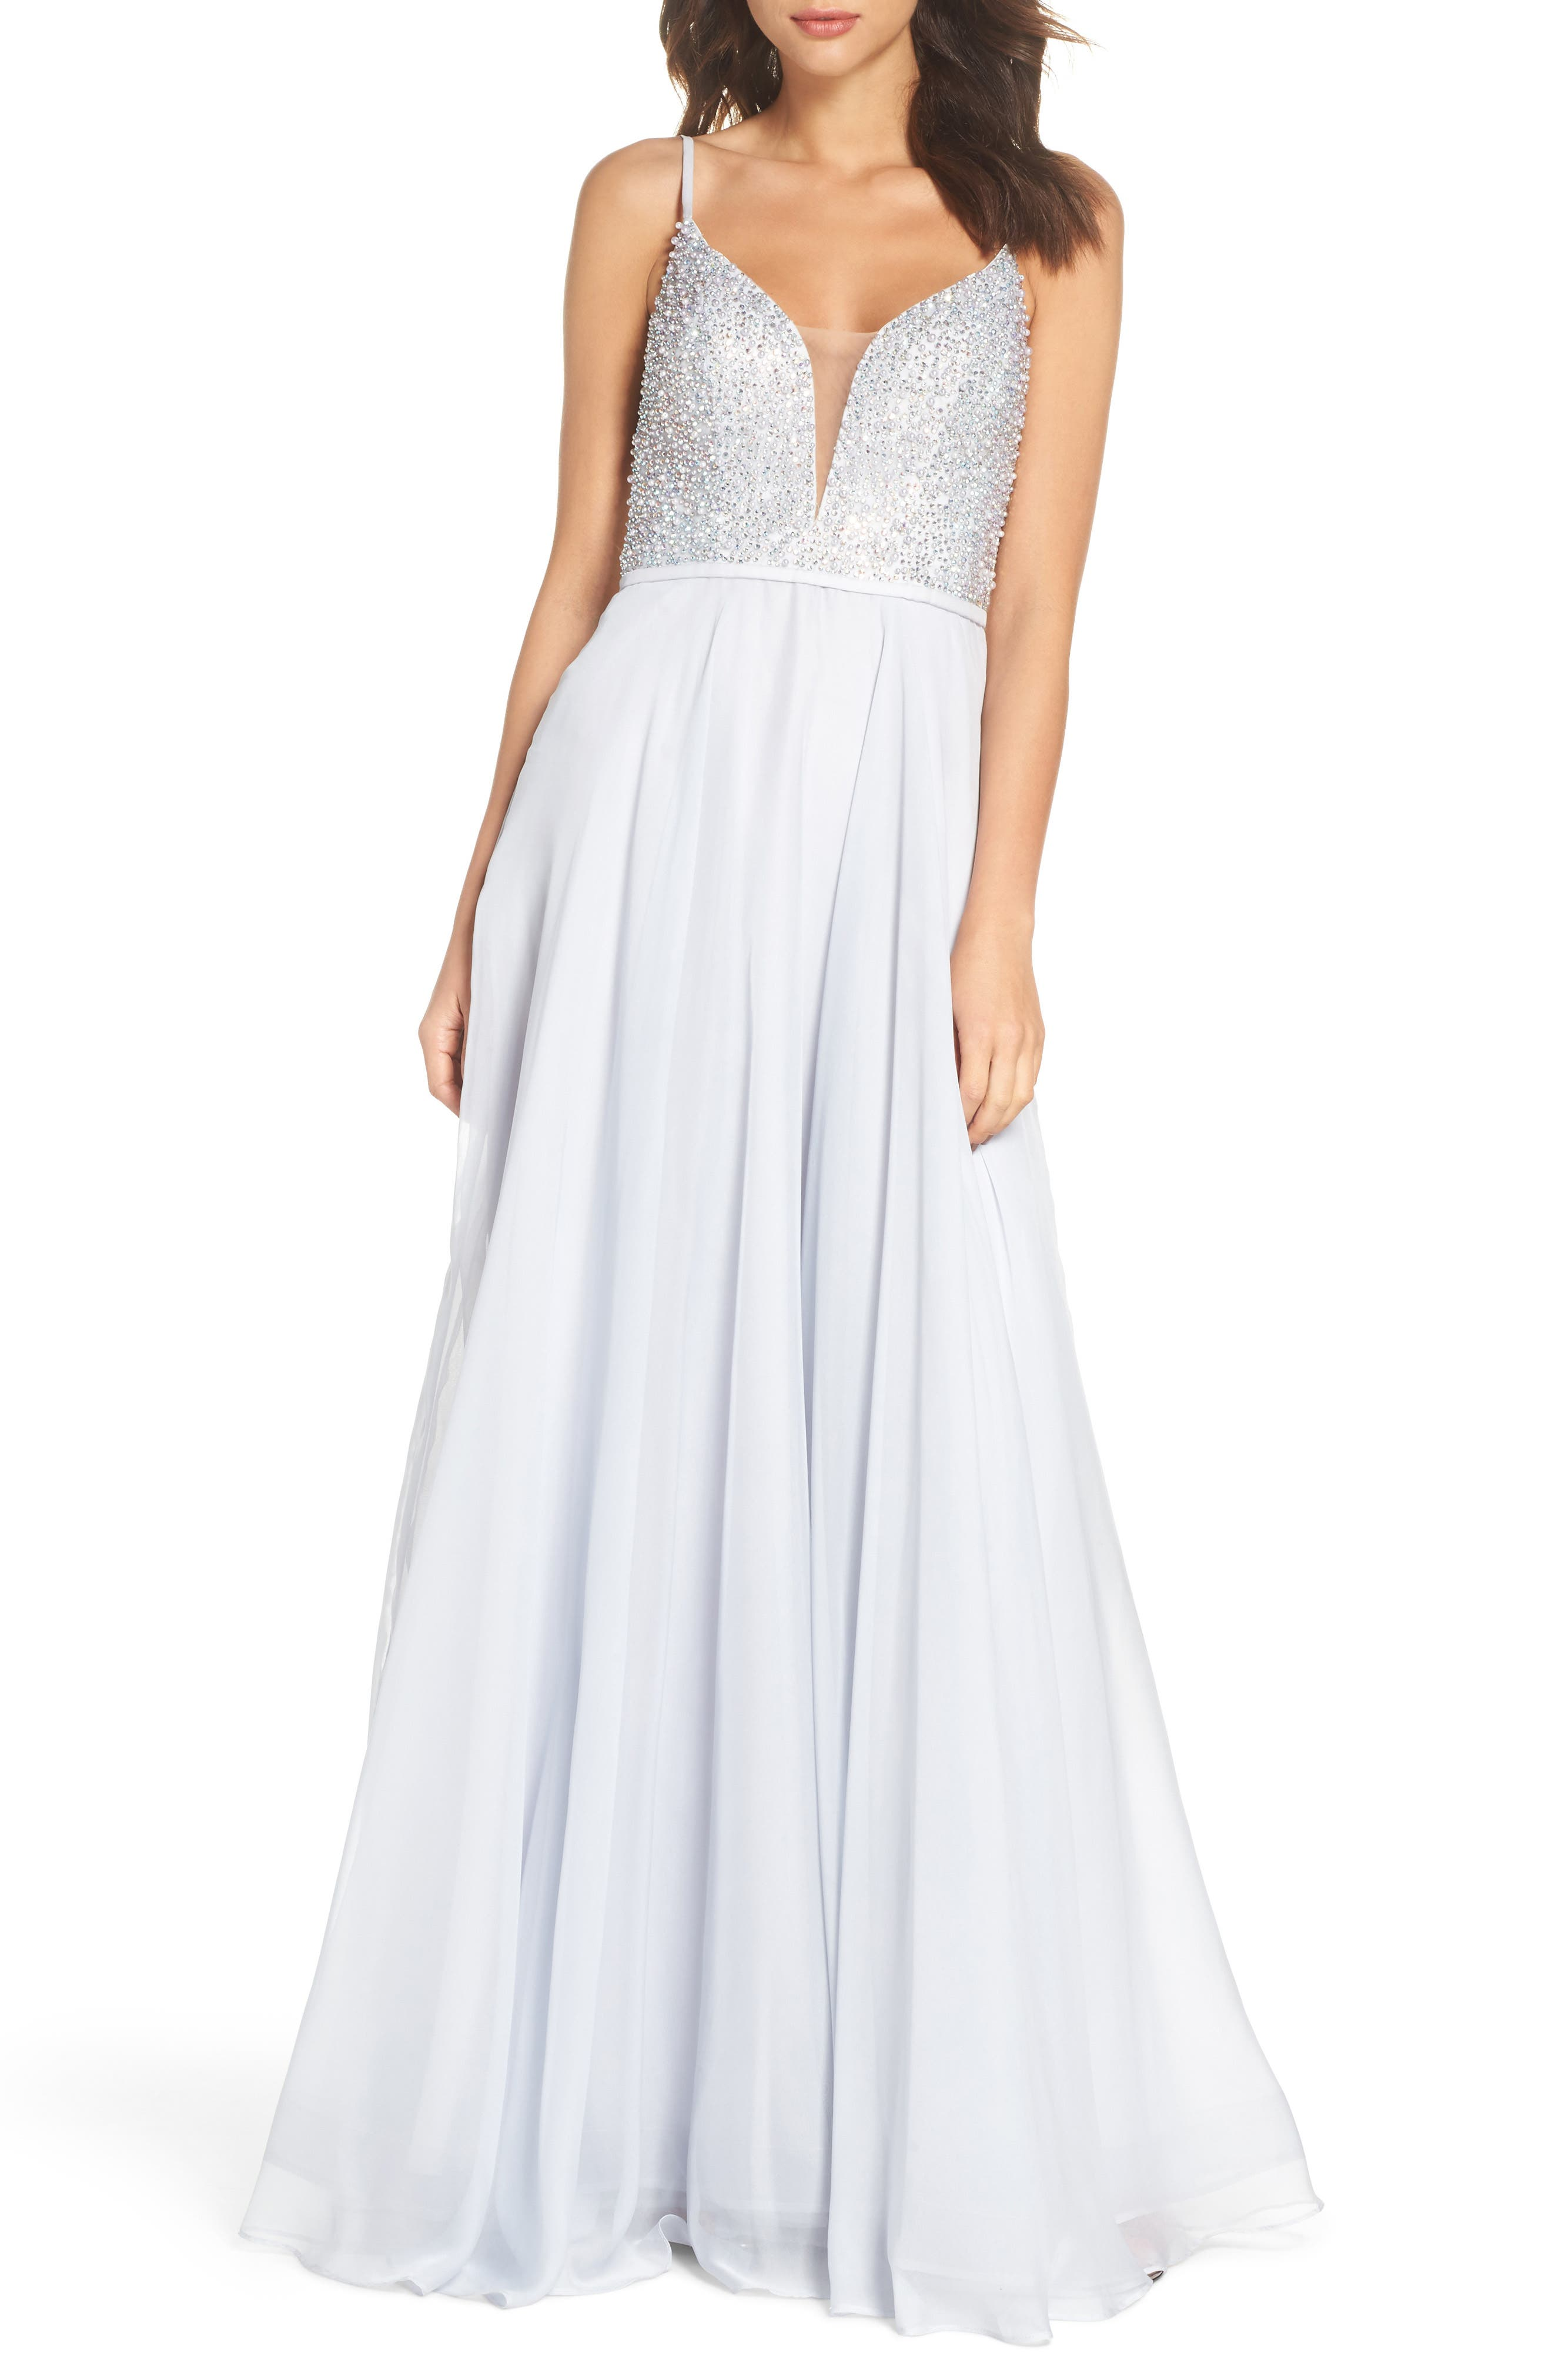 Alternate Image 1 Selected - La Femme Beaded Chiffon Gown